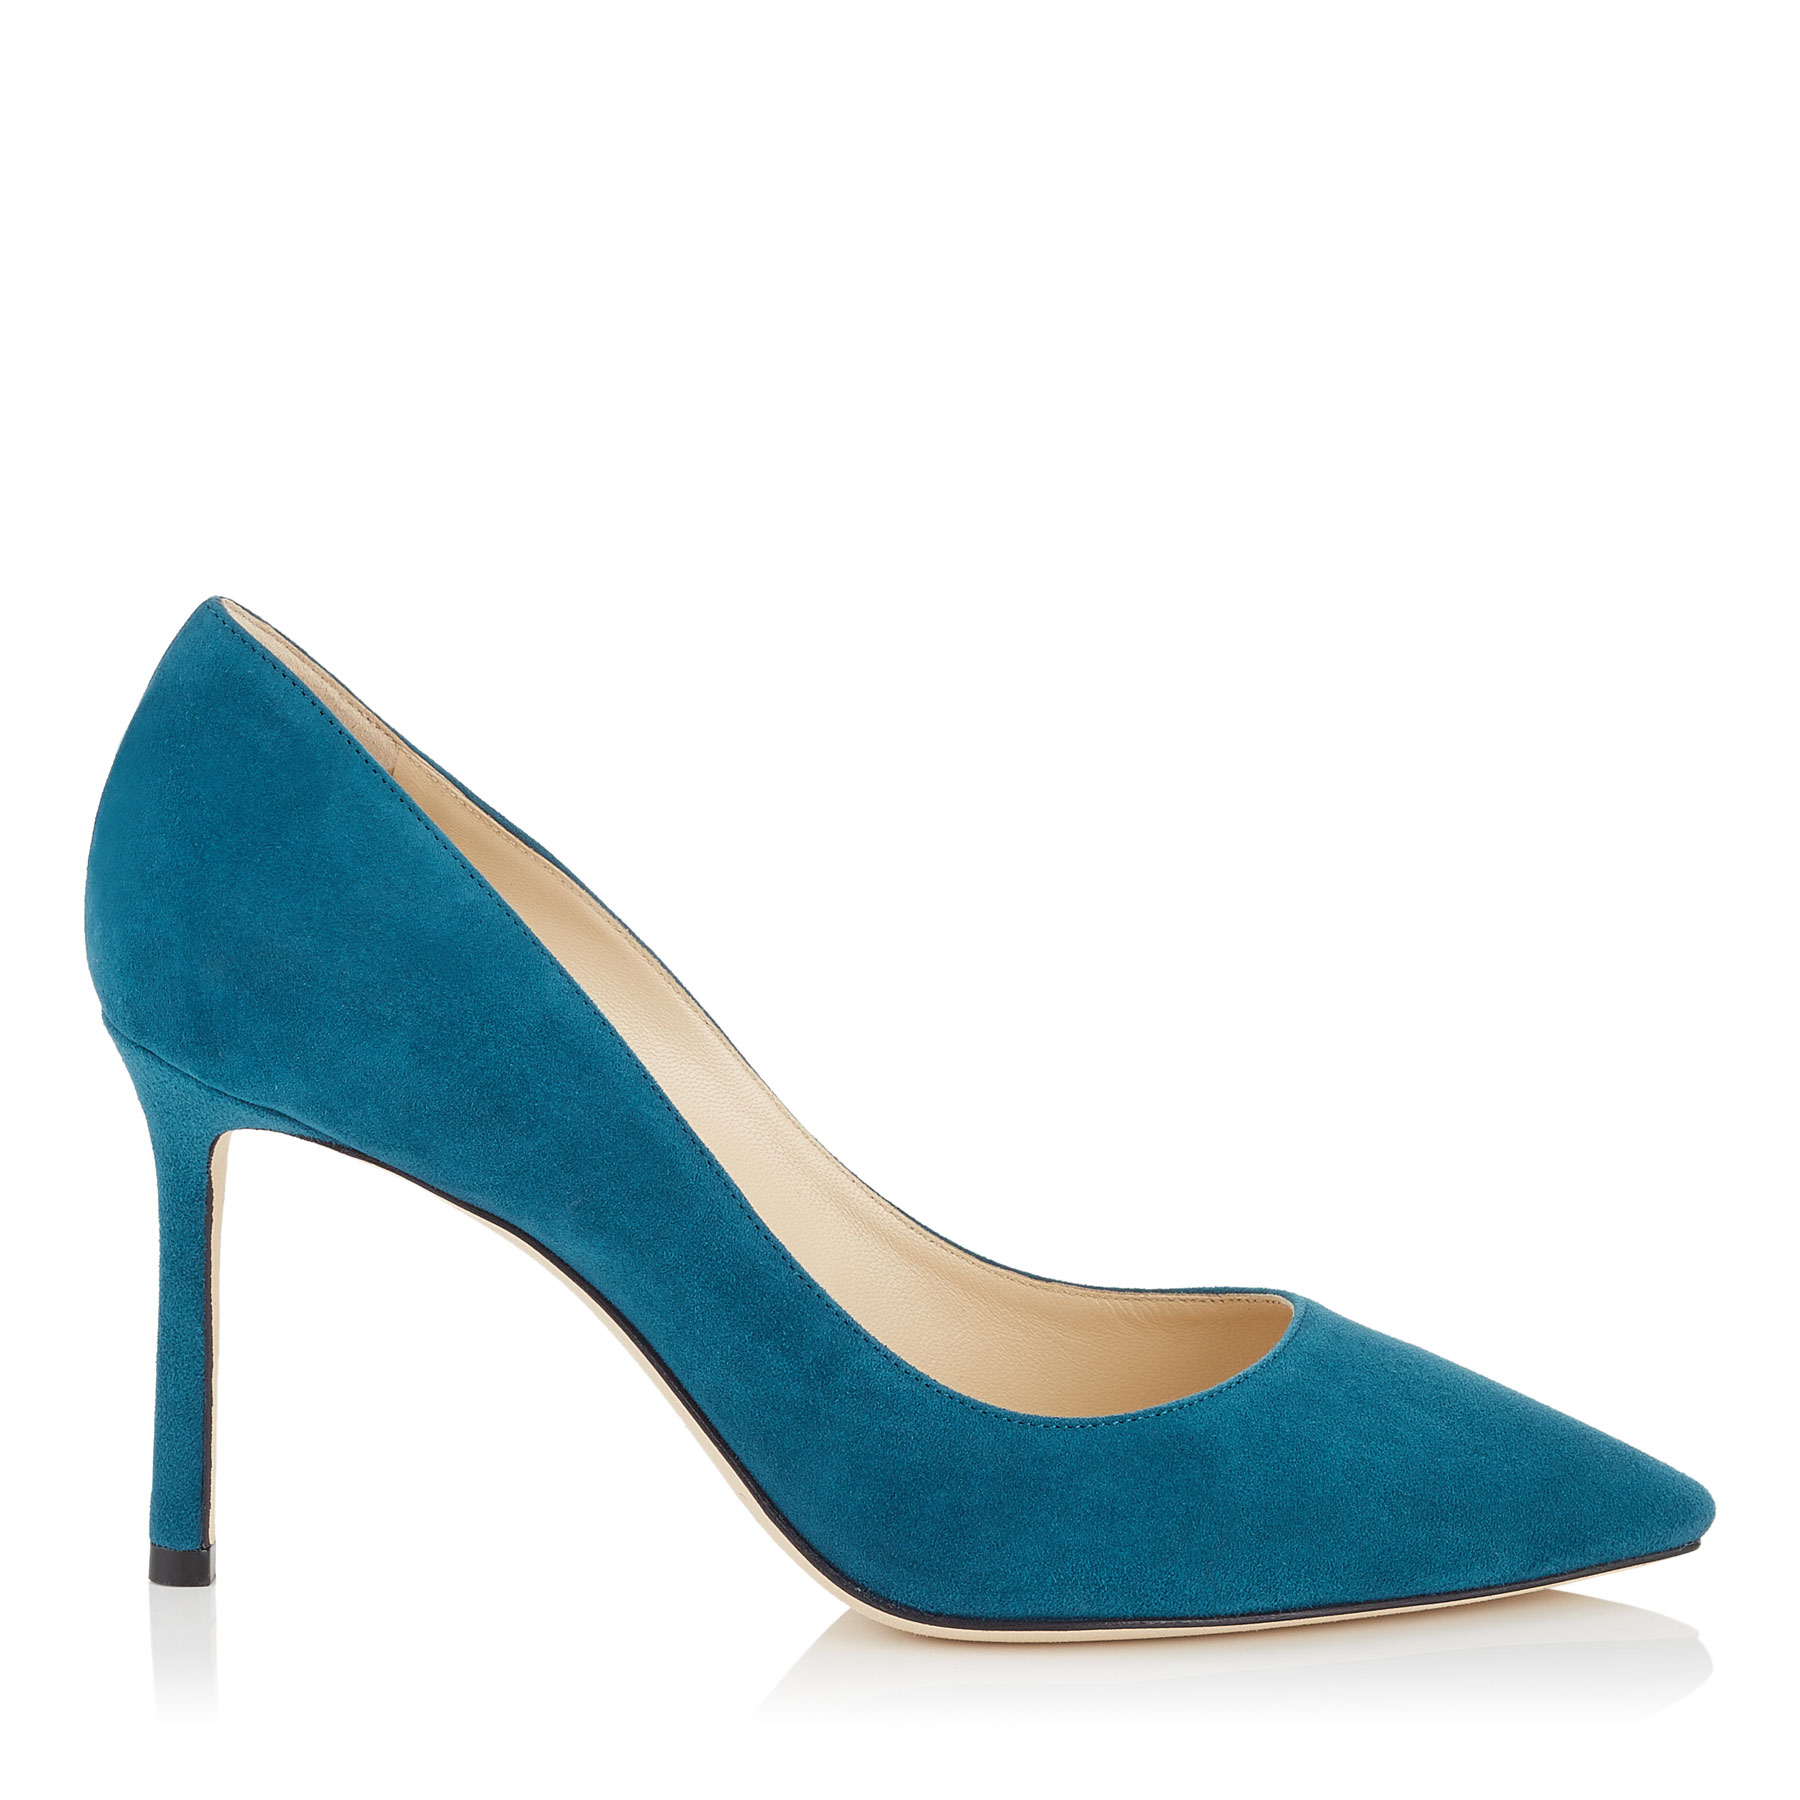 ROMY 85 Midnight Blue Suede Pointy Toe Pumps